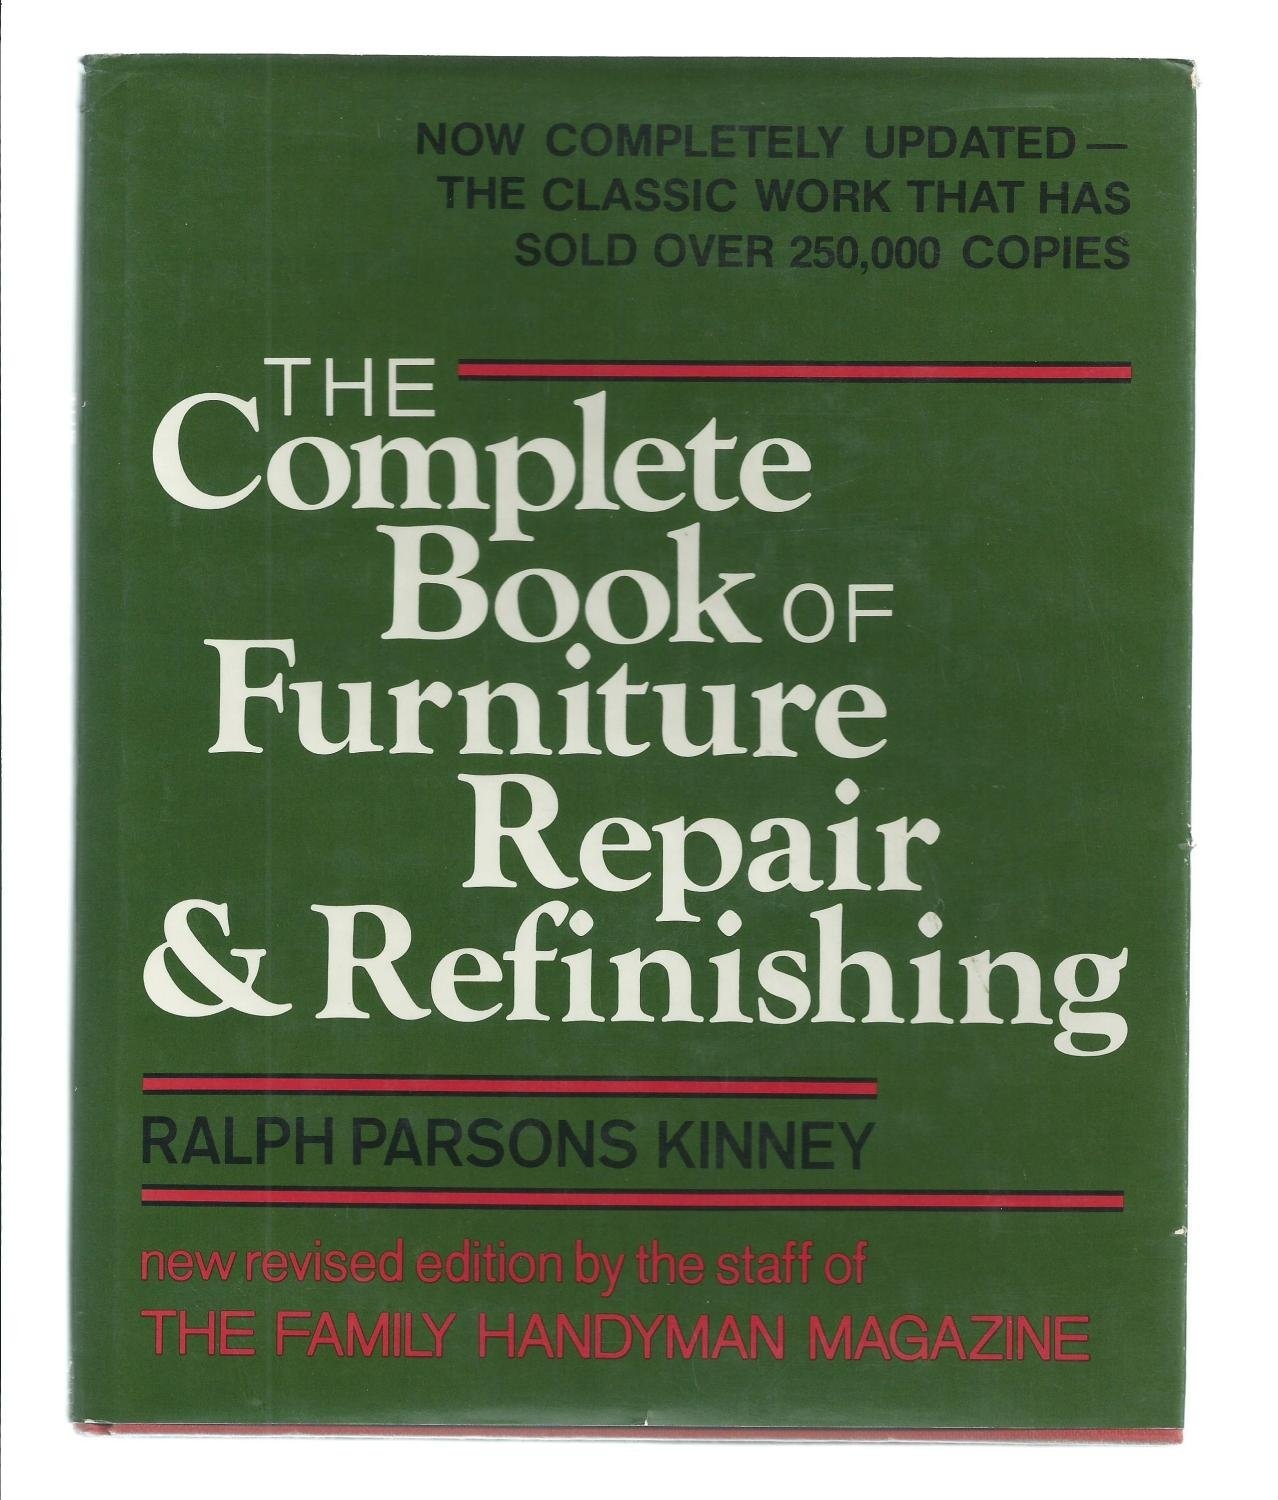 The Complete Book of Furniture Repair & Refinishing: Ralph Parsons Kinney:  9780684168395: Amazon.com: Books